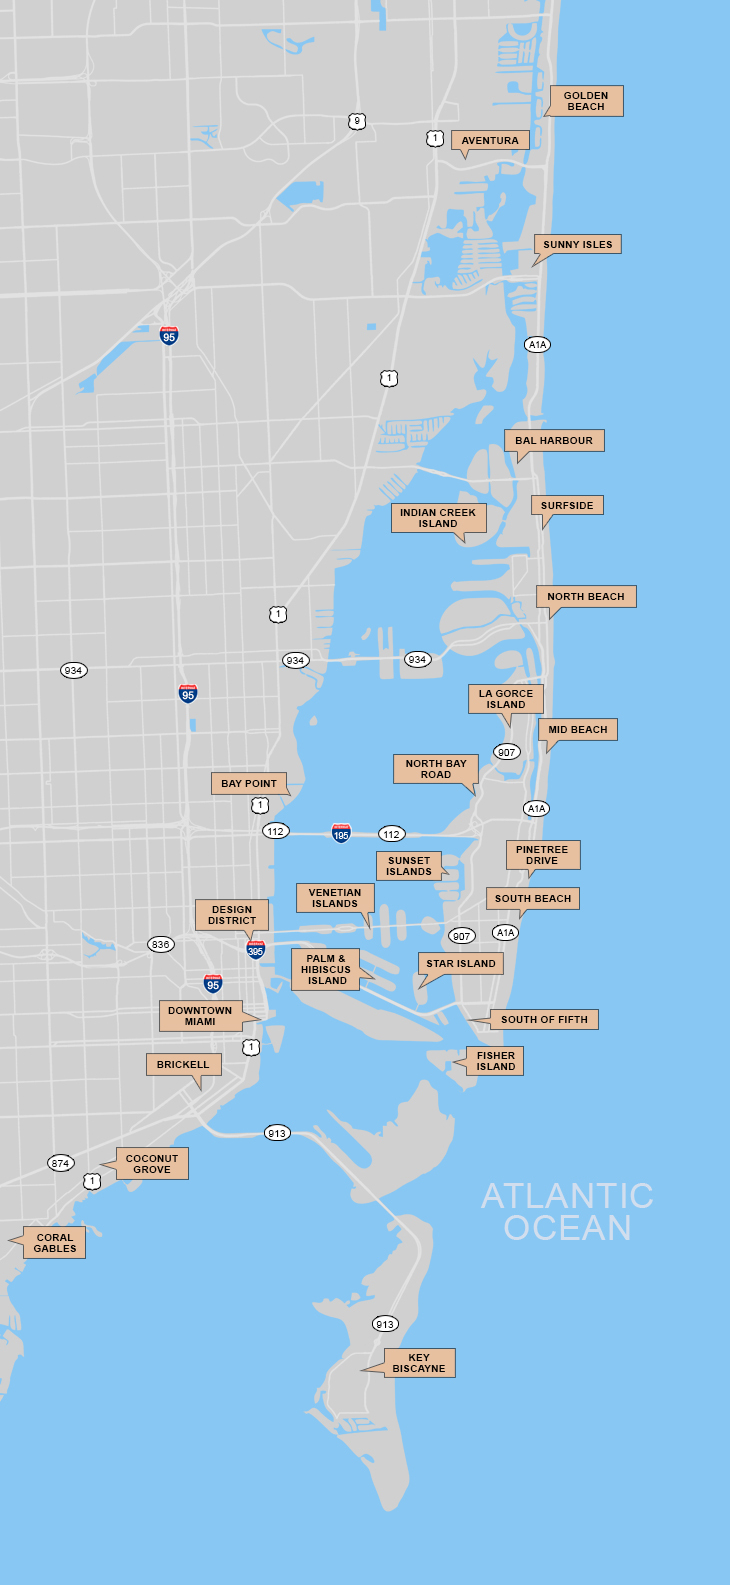 South Florida Map Search - Emerald Island Florida Map